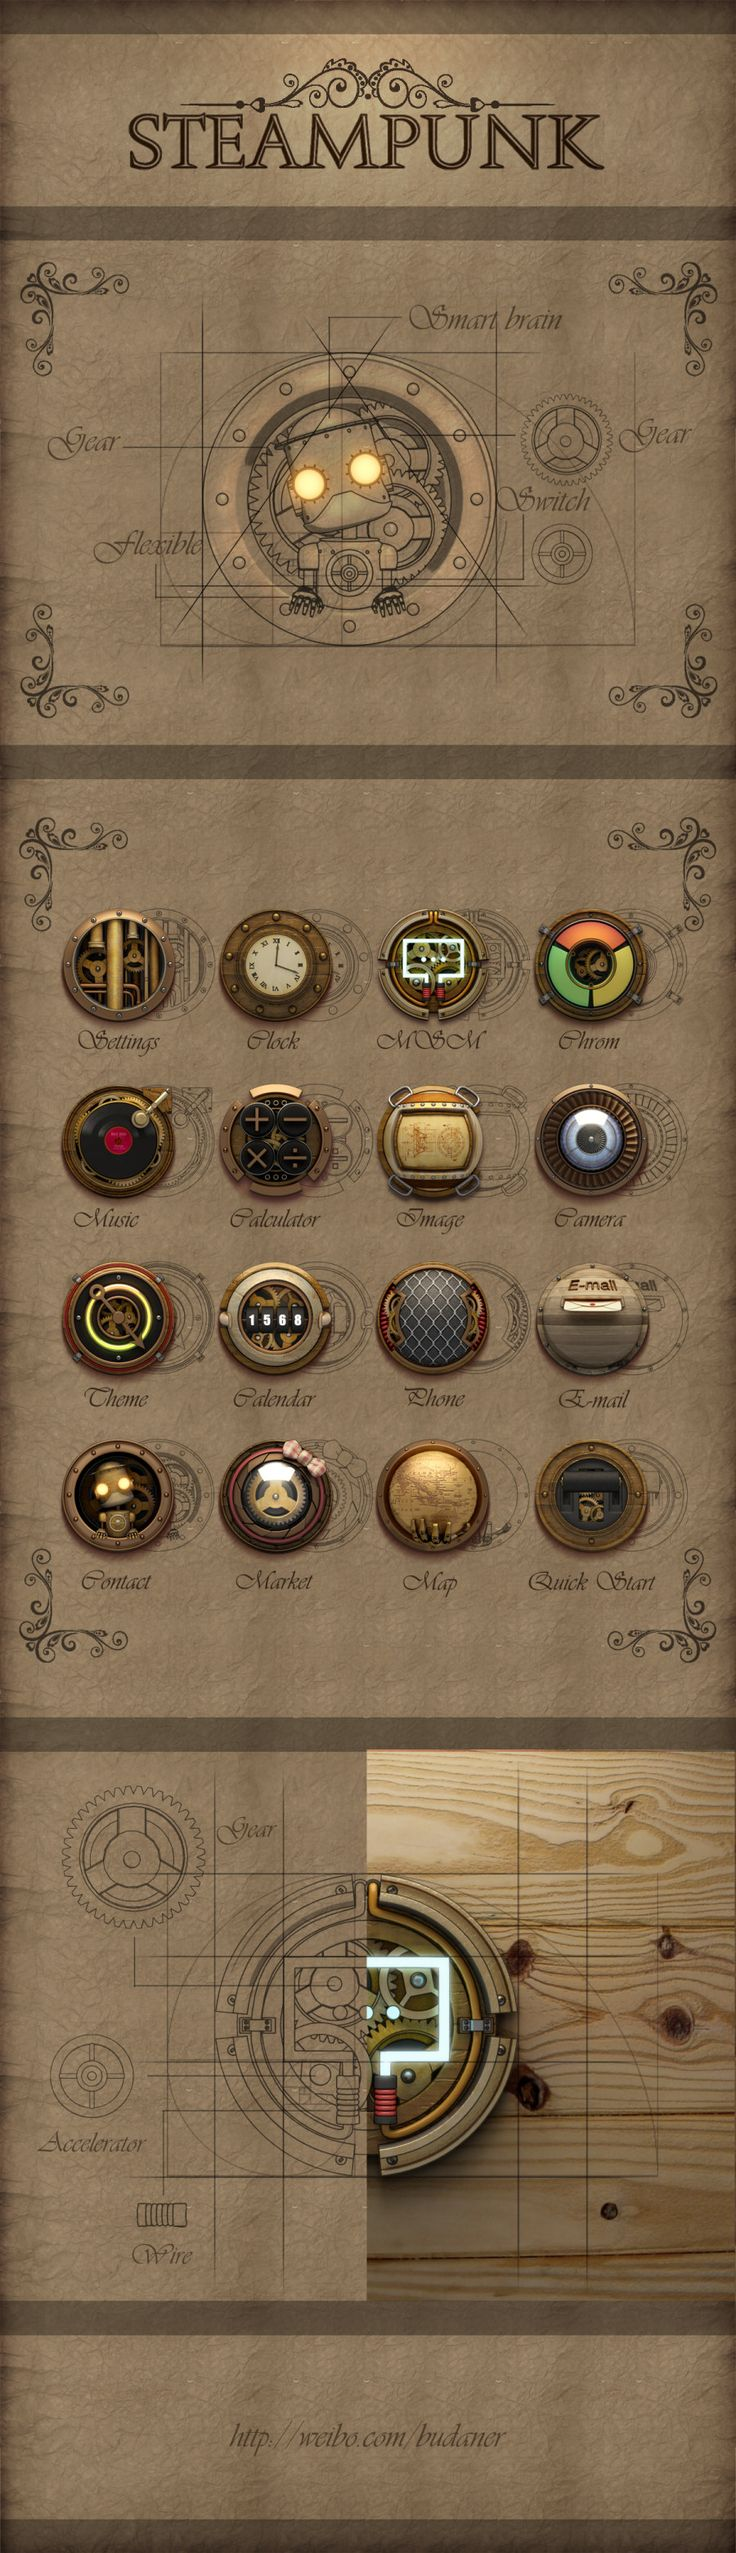 Steampunk ikon set by aiki007 game user interface gui ui | Create your own roleplaying game material w/ RPG Bard: www.rpgbard.com | Writing inspiration for Dungeons and Dragons DND D&D Pathfinder PFRPG Warhammer 40k Star Wars Shadowrun Call of Cthulhu Lord of the Rings LoTR + d20 fantasy science fiction scifi horror design | Not Trusty Sword art: click artwork for source